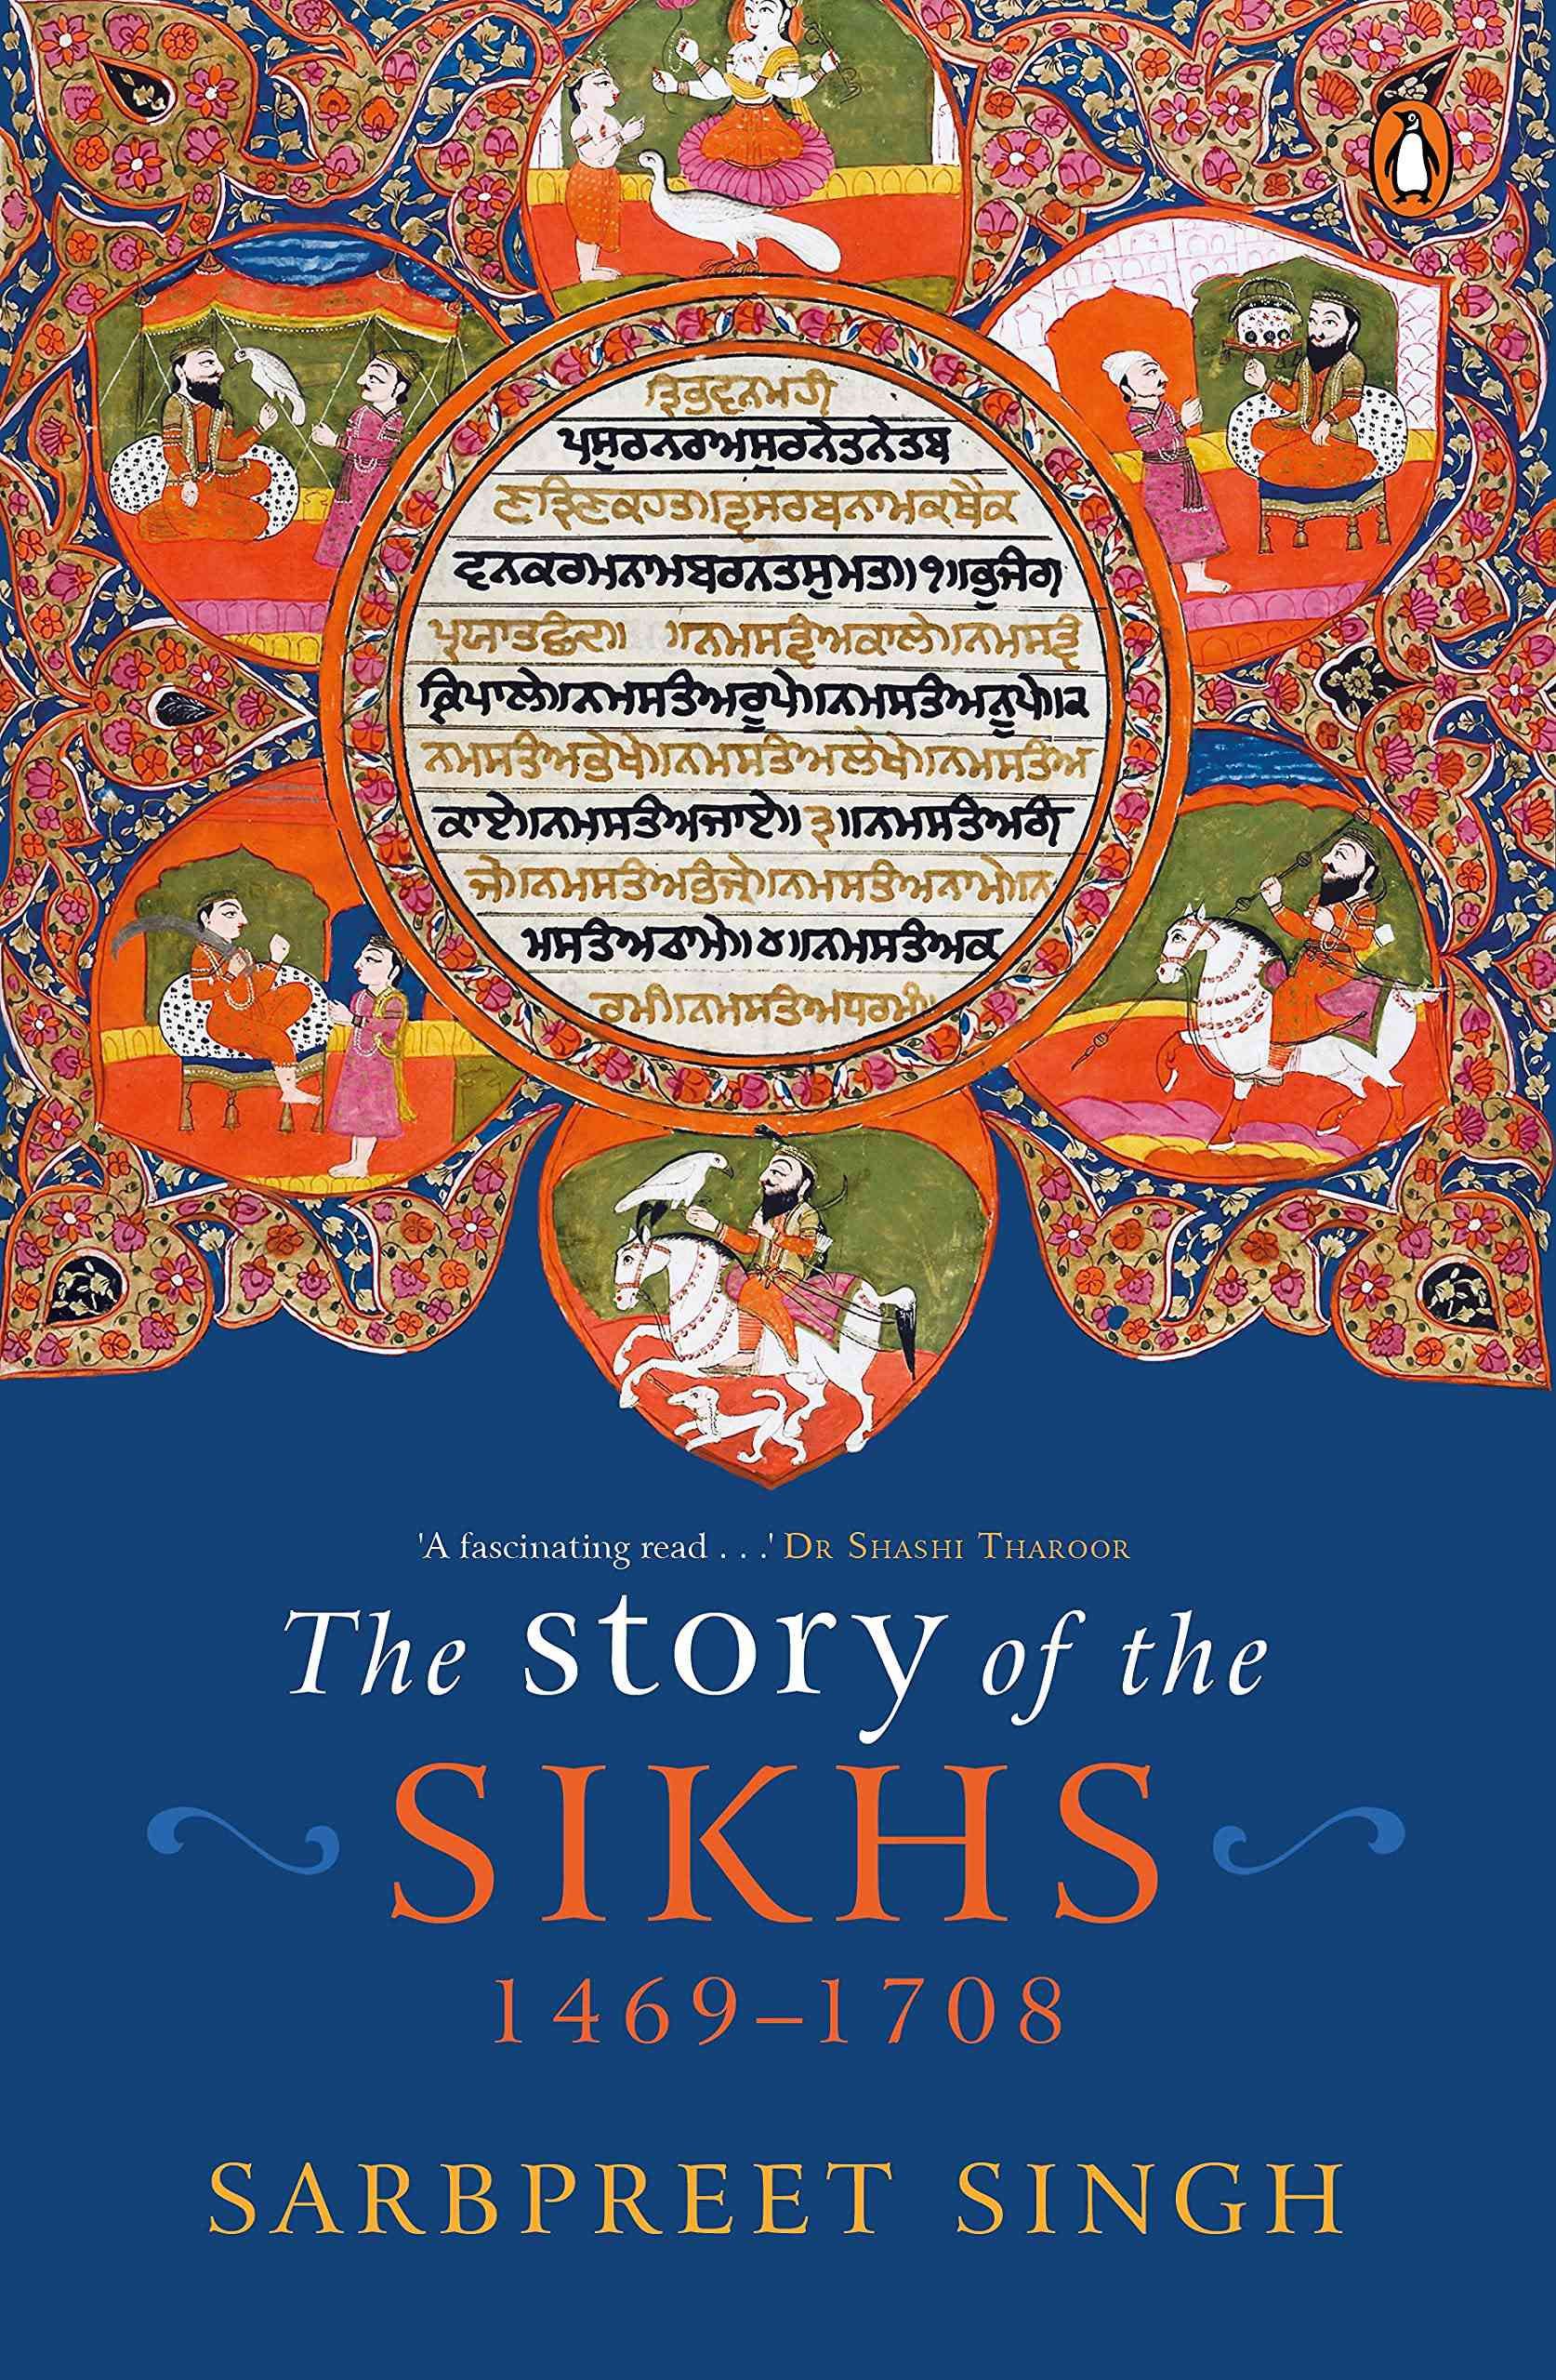 The Story of the Sikhs: 1469-1708